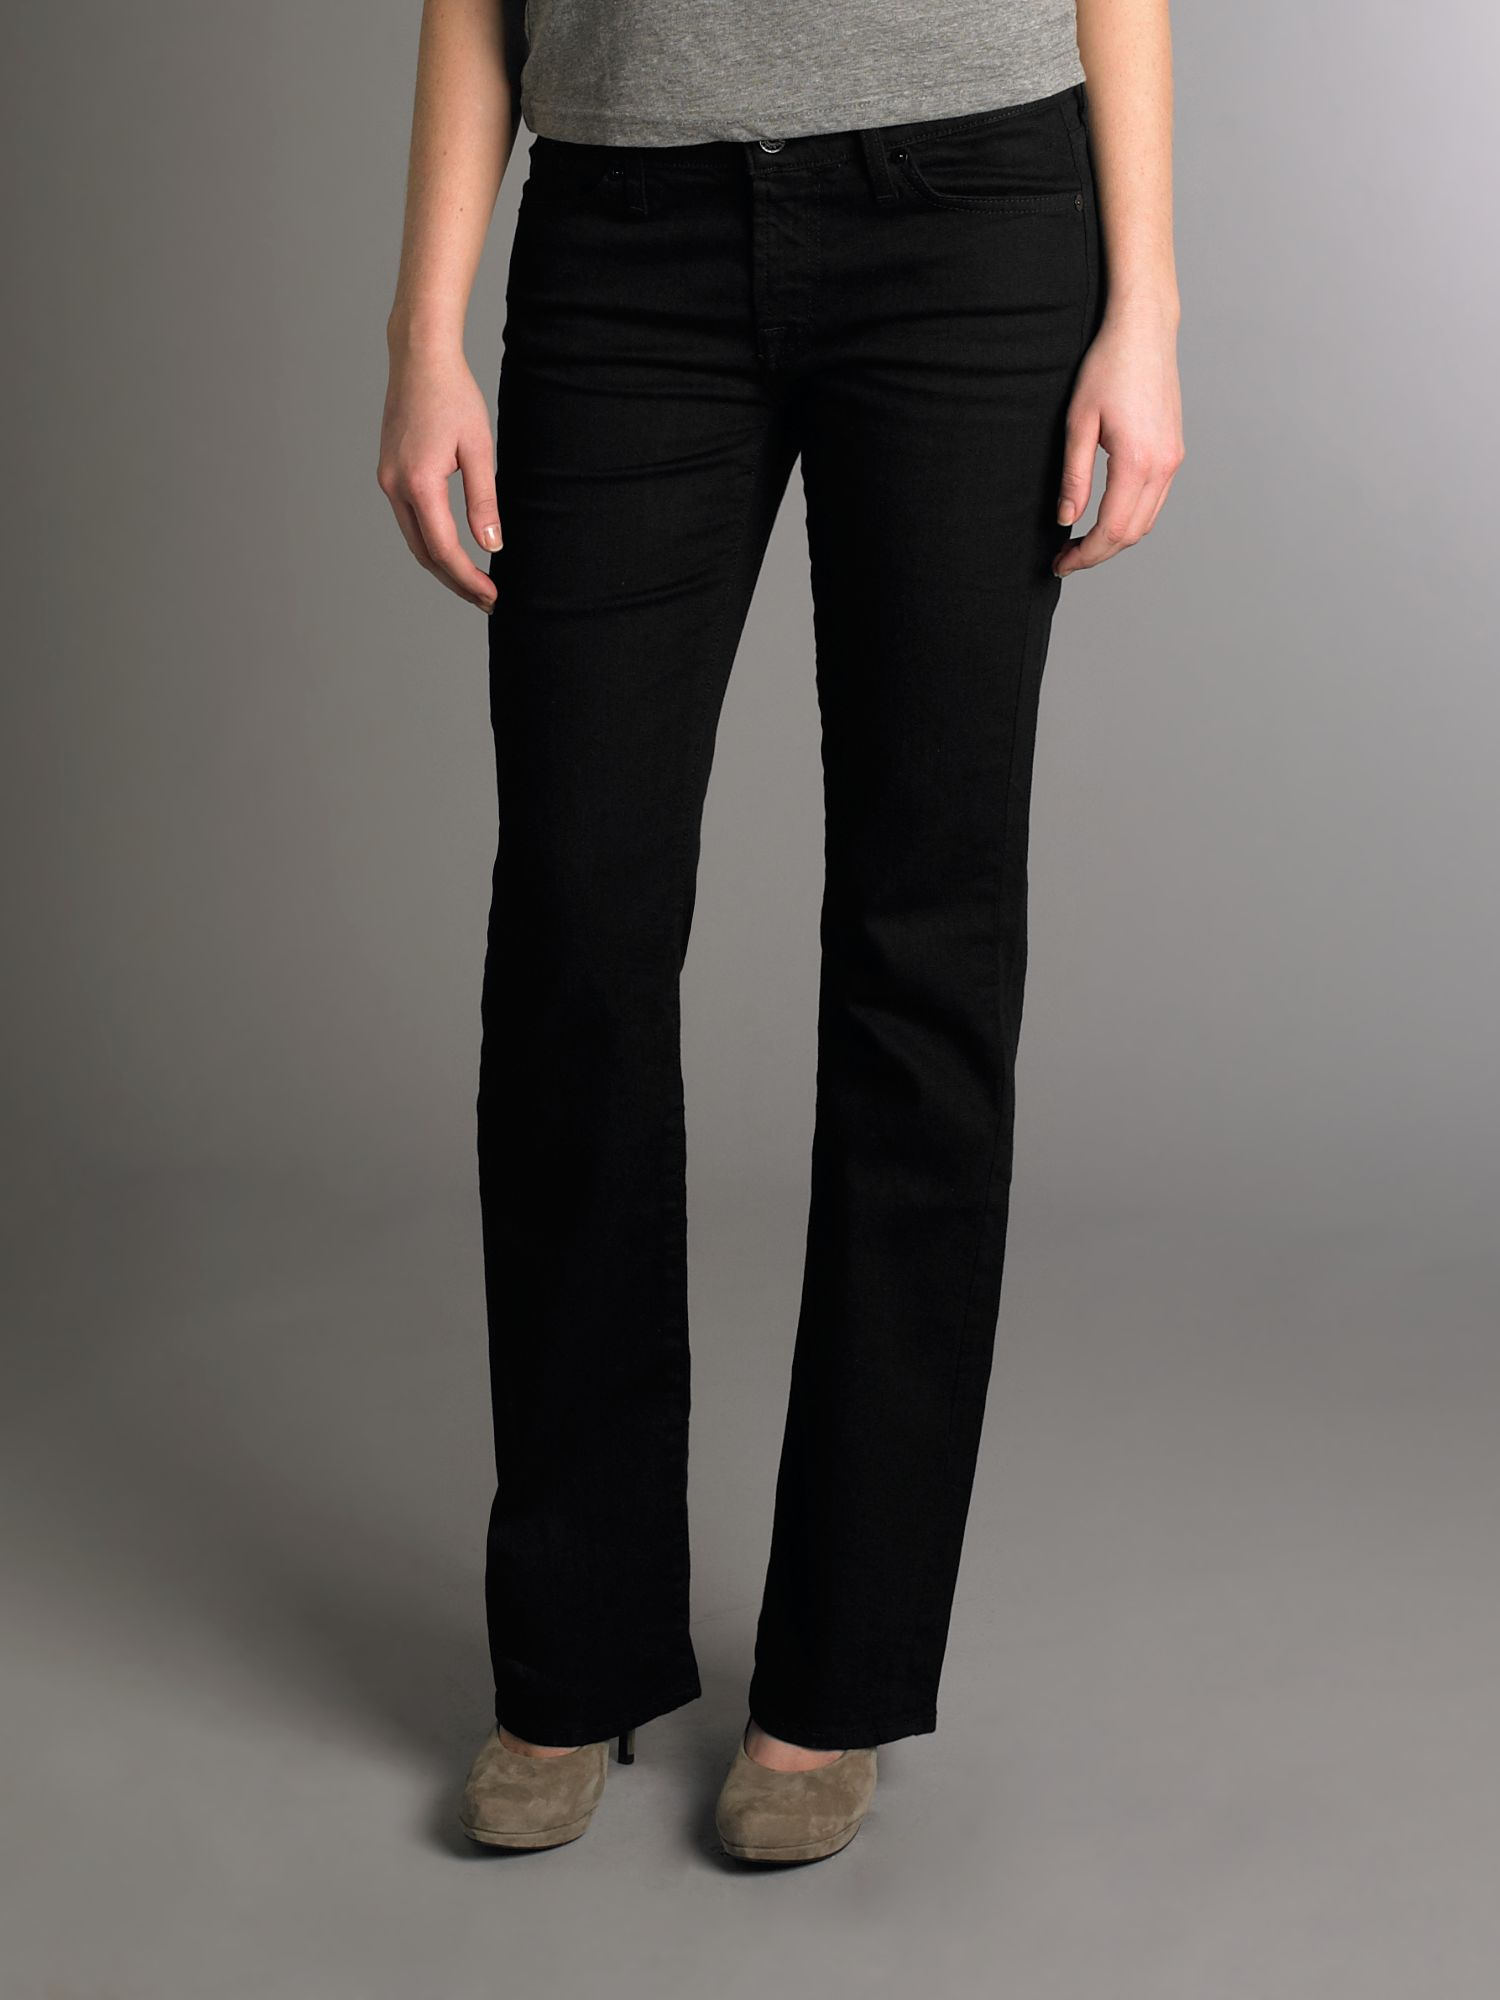 Classic boot cut mid rise in black